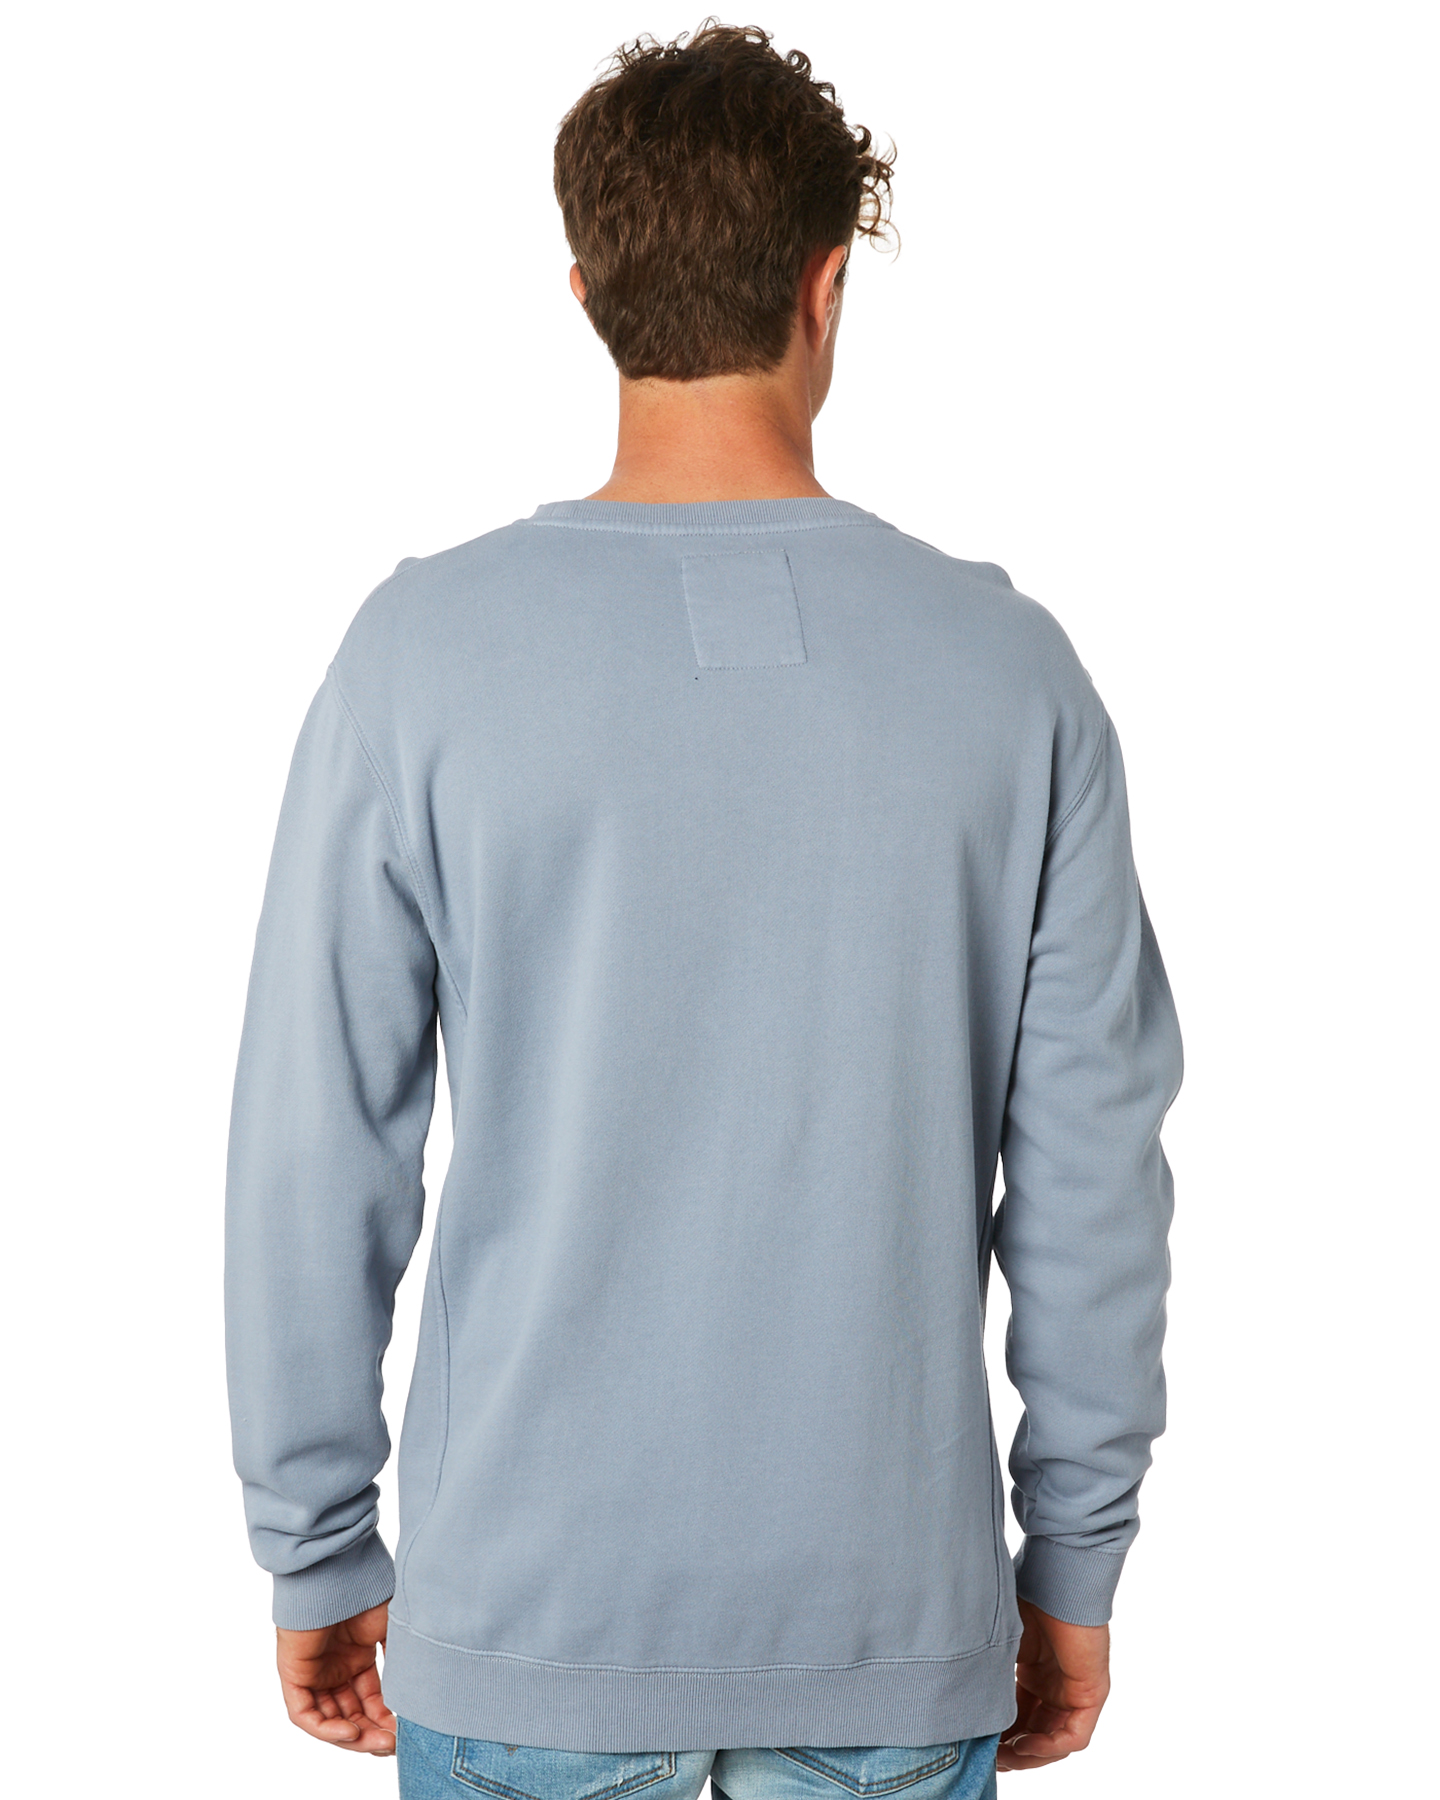 5463b9b2a2c350 ... CEMENT MENS CLOTHING RIP CURL JUMPERS - CFEOD10038 ...